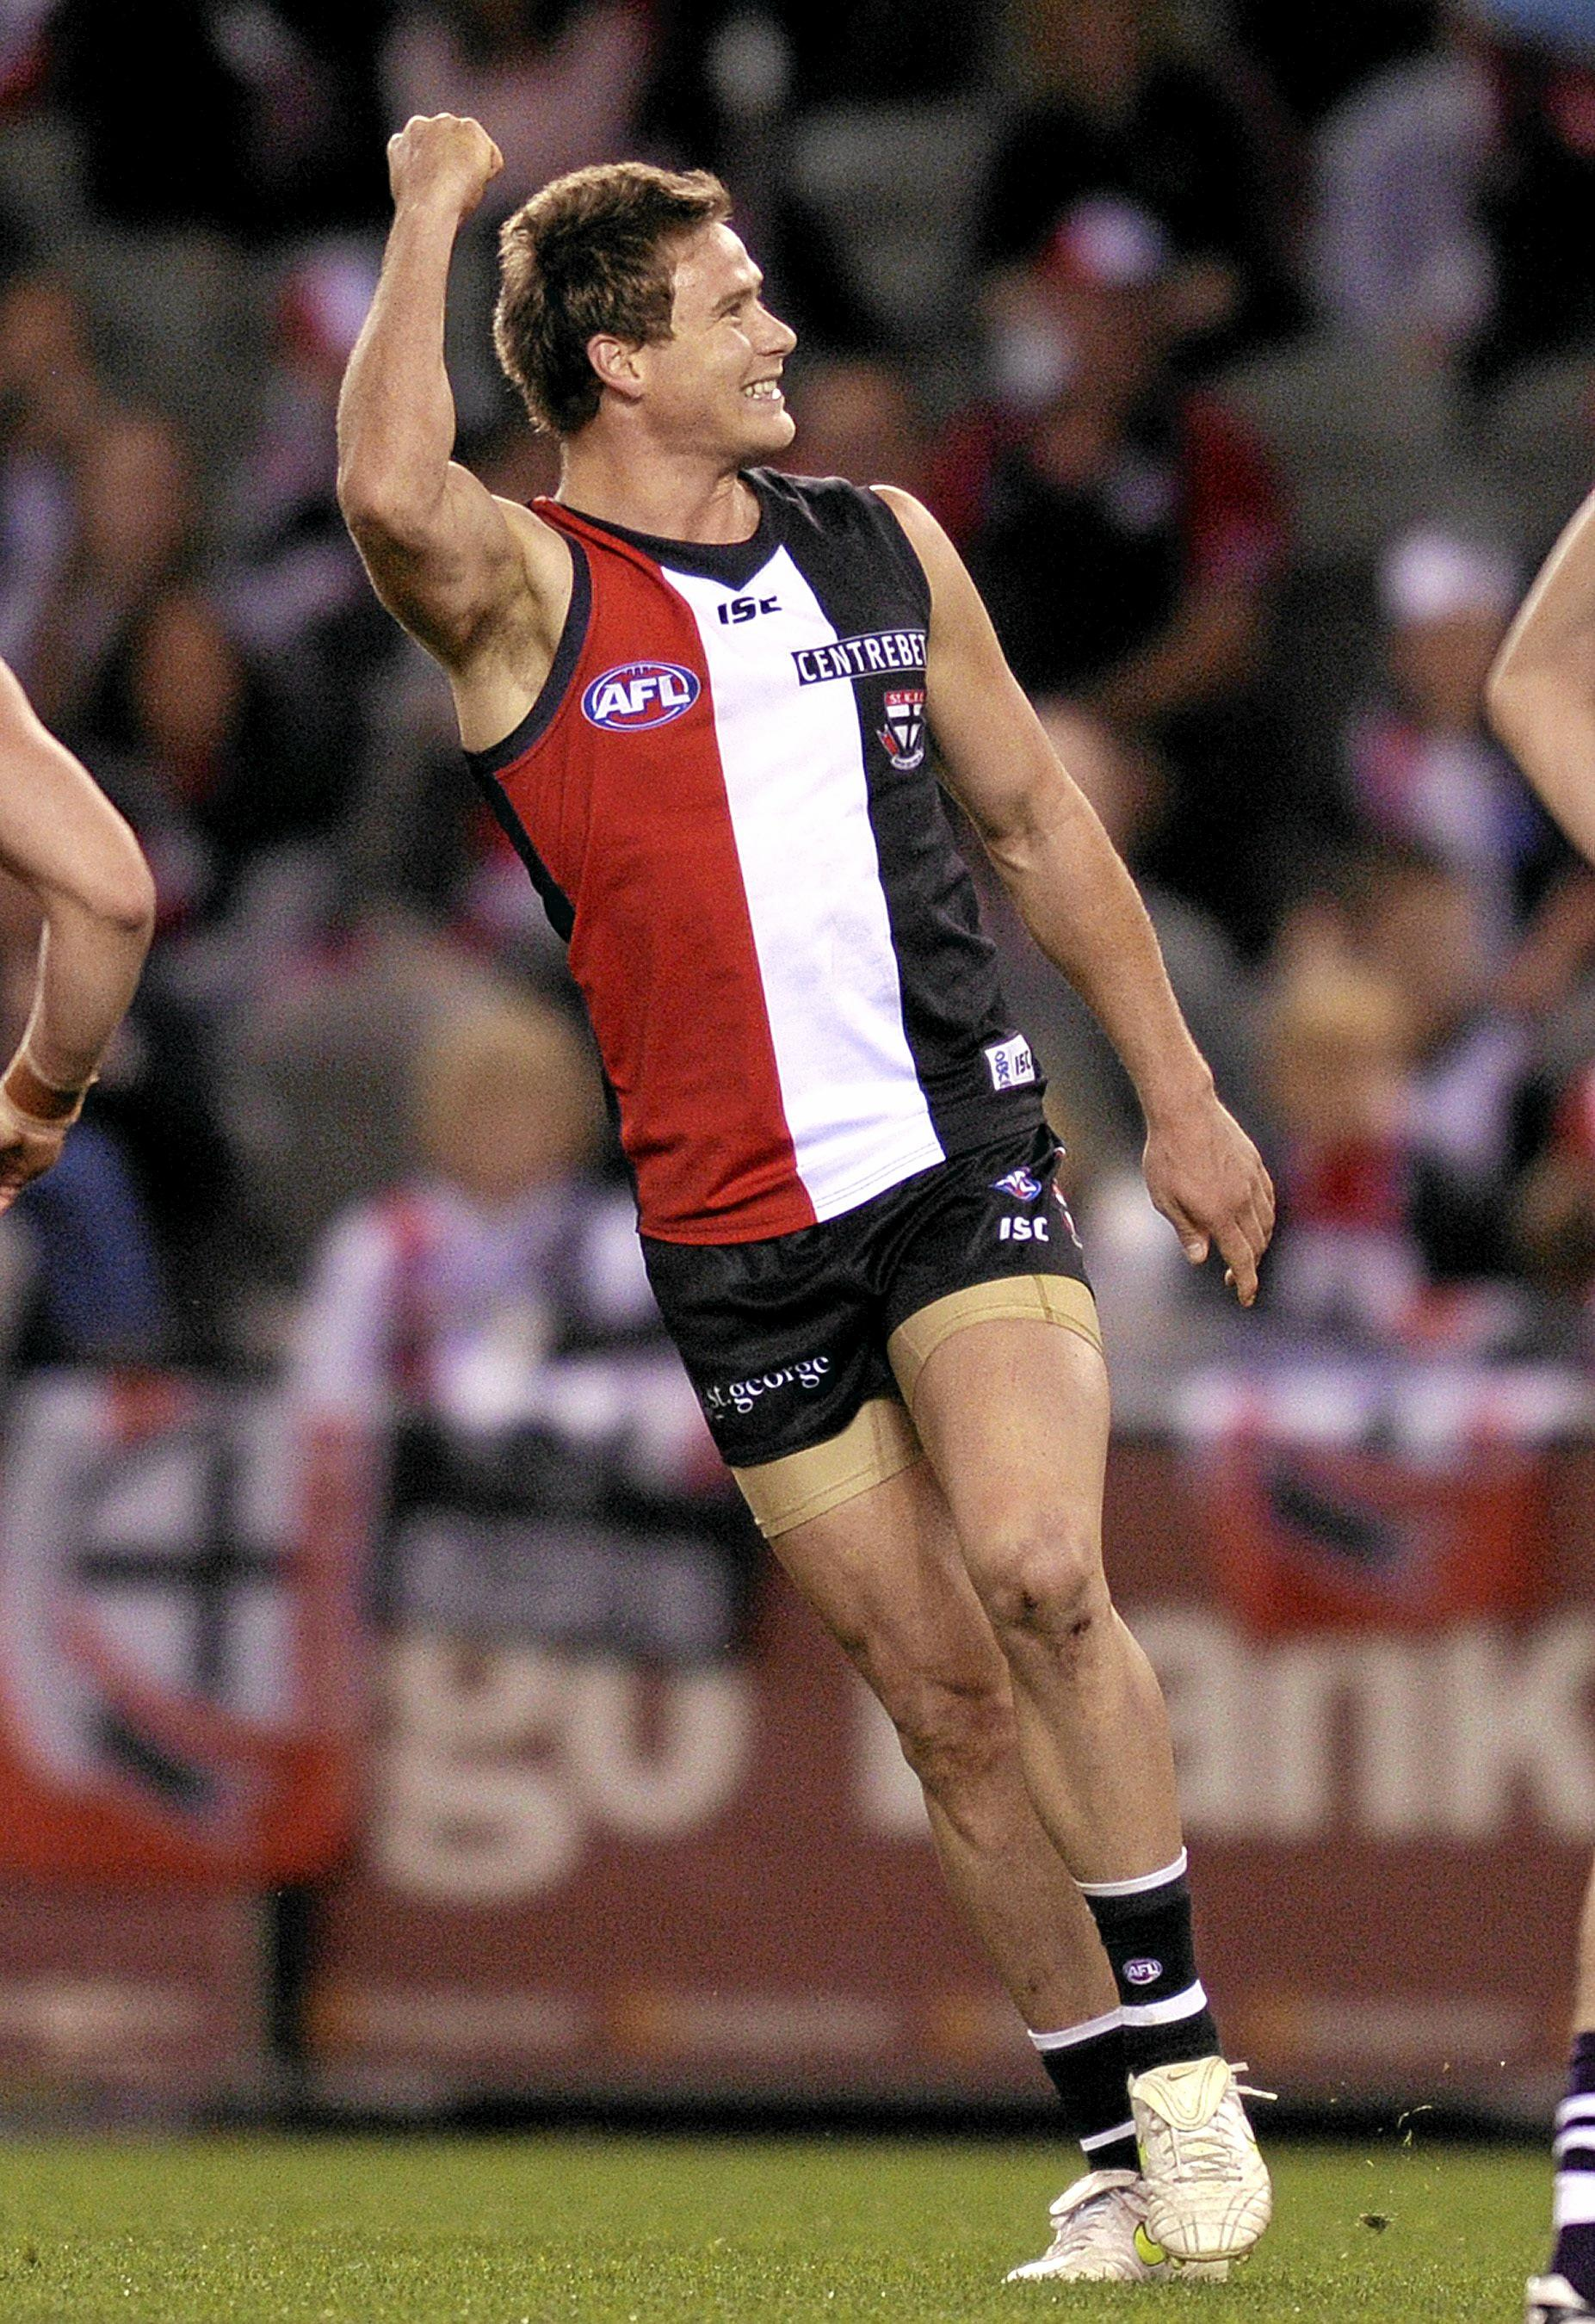 Mackay product David Armitage announced this week he would leave St Kilda after 13 seasons nad 169 games for the club.